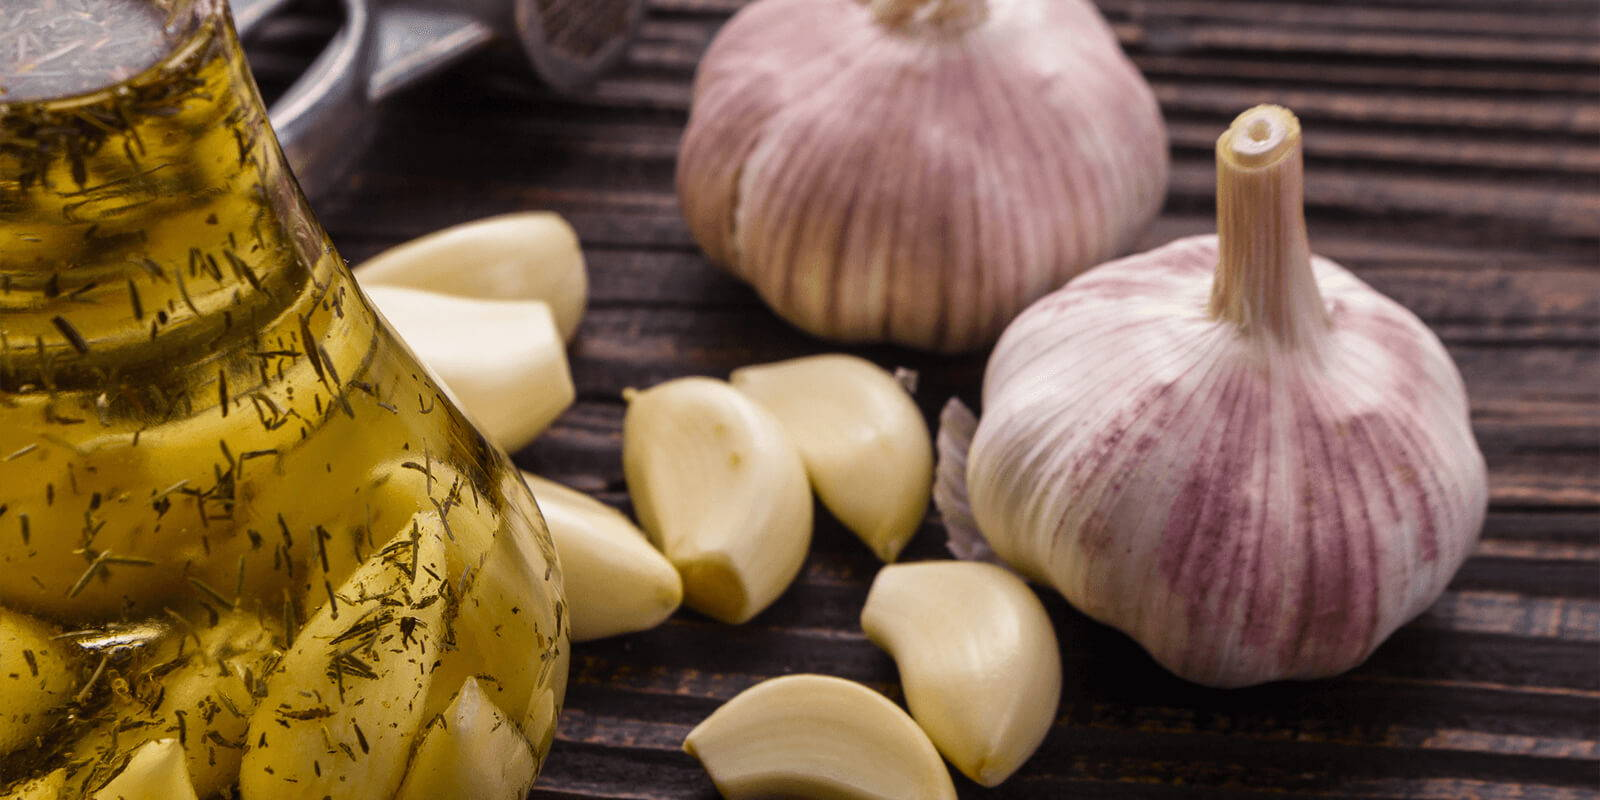 Garlic cloves and olive oil.